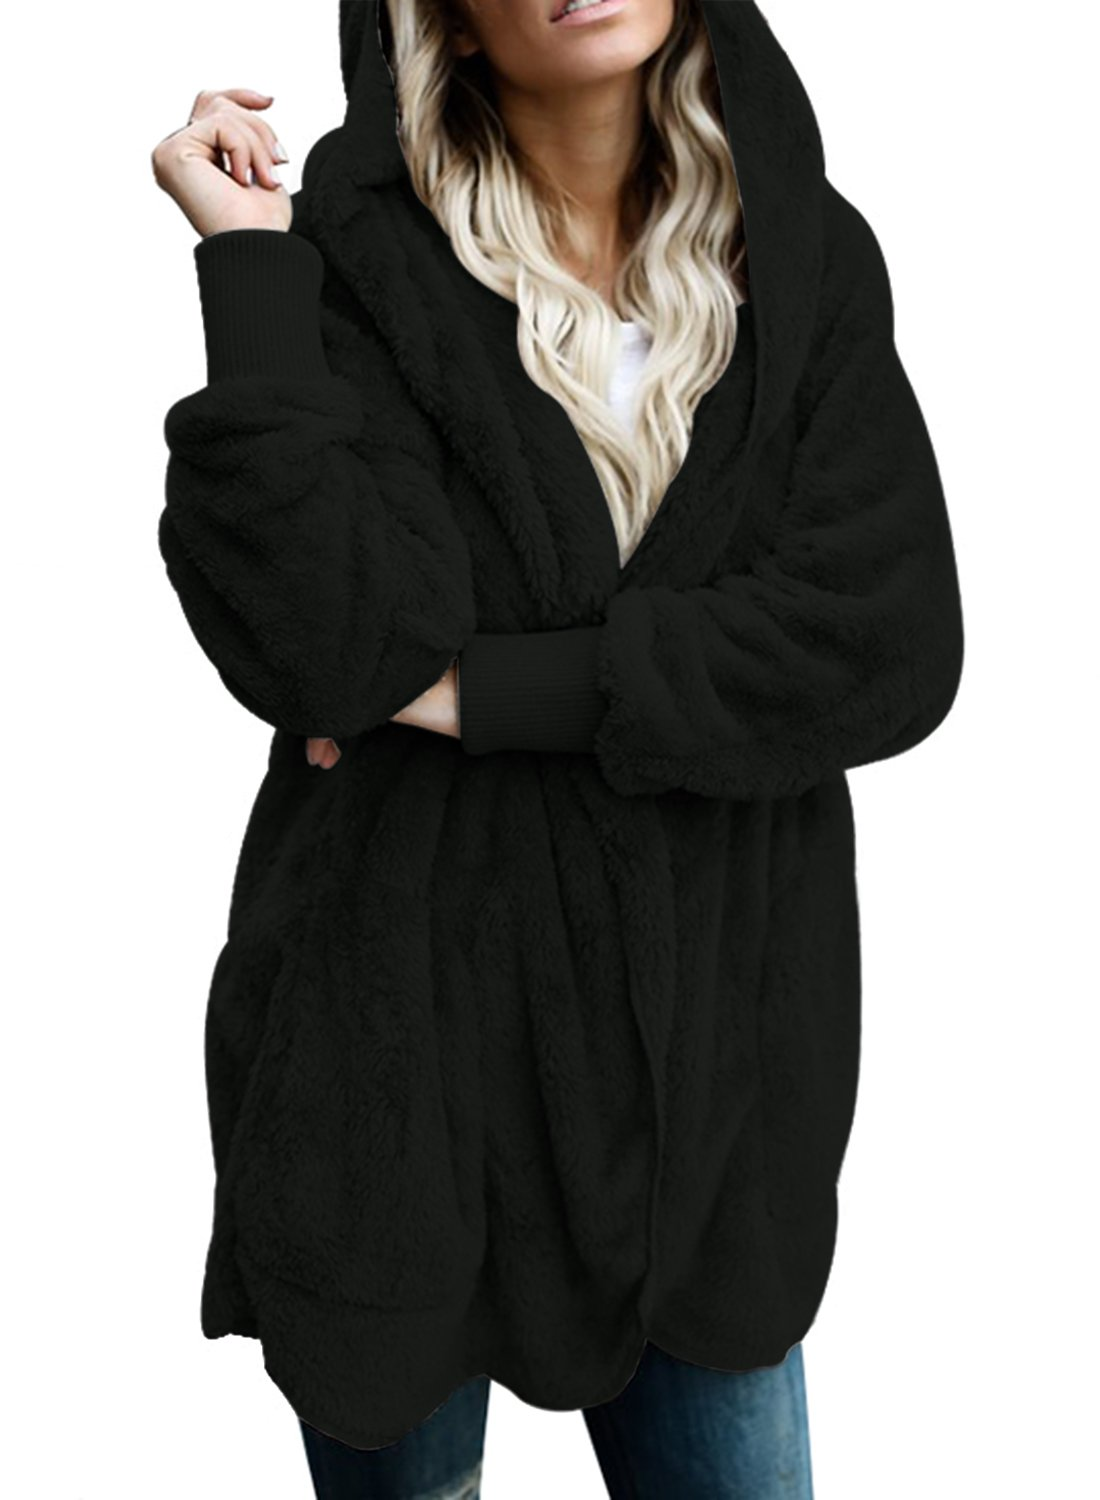 Dokotoo Womens Casual Ladies Female Fuzzy Fashion 2019 Winter Fall Open Front Long Sleeve Fluffy Hoodies Fleece Cardigans Sweaters Jacket Coats Outerwear Black Medium by Dokotoo